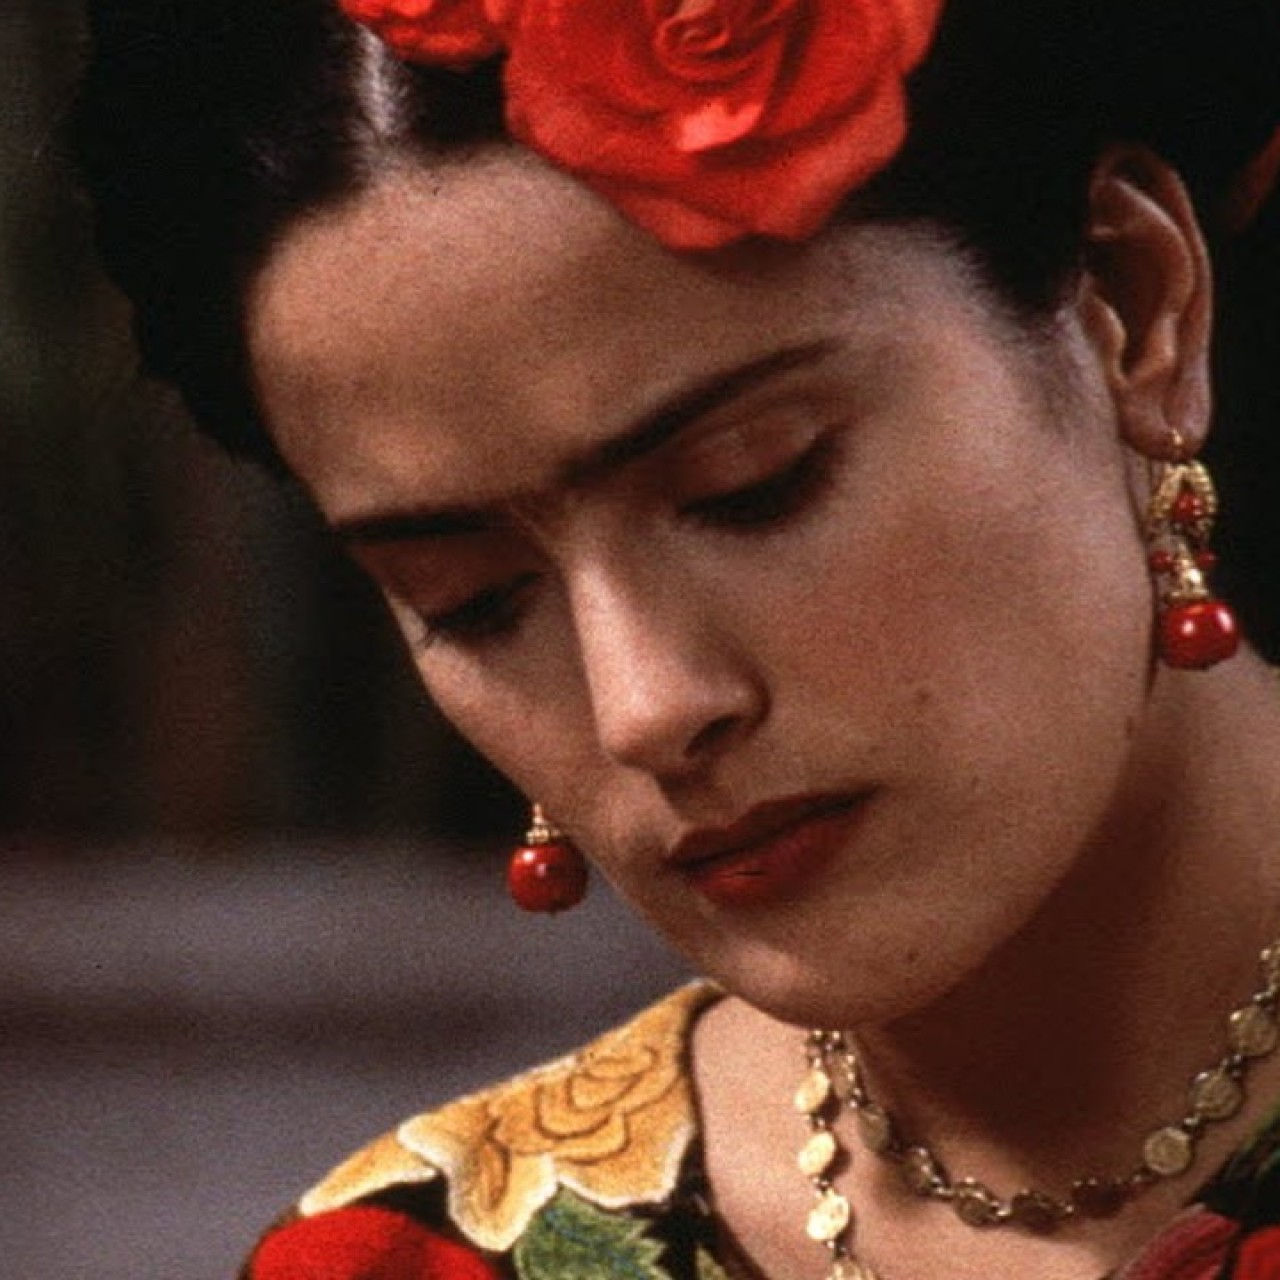 10 hotspots to admire the works of moustachioed artist Frida Kahlo